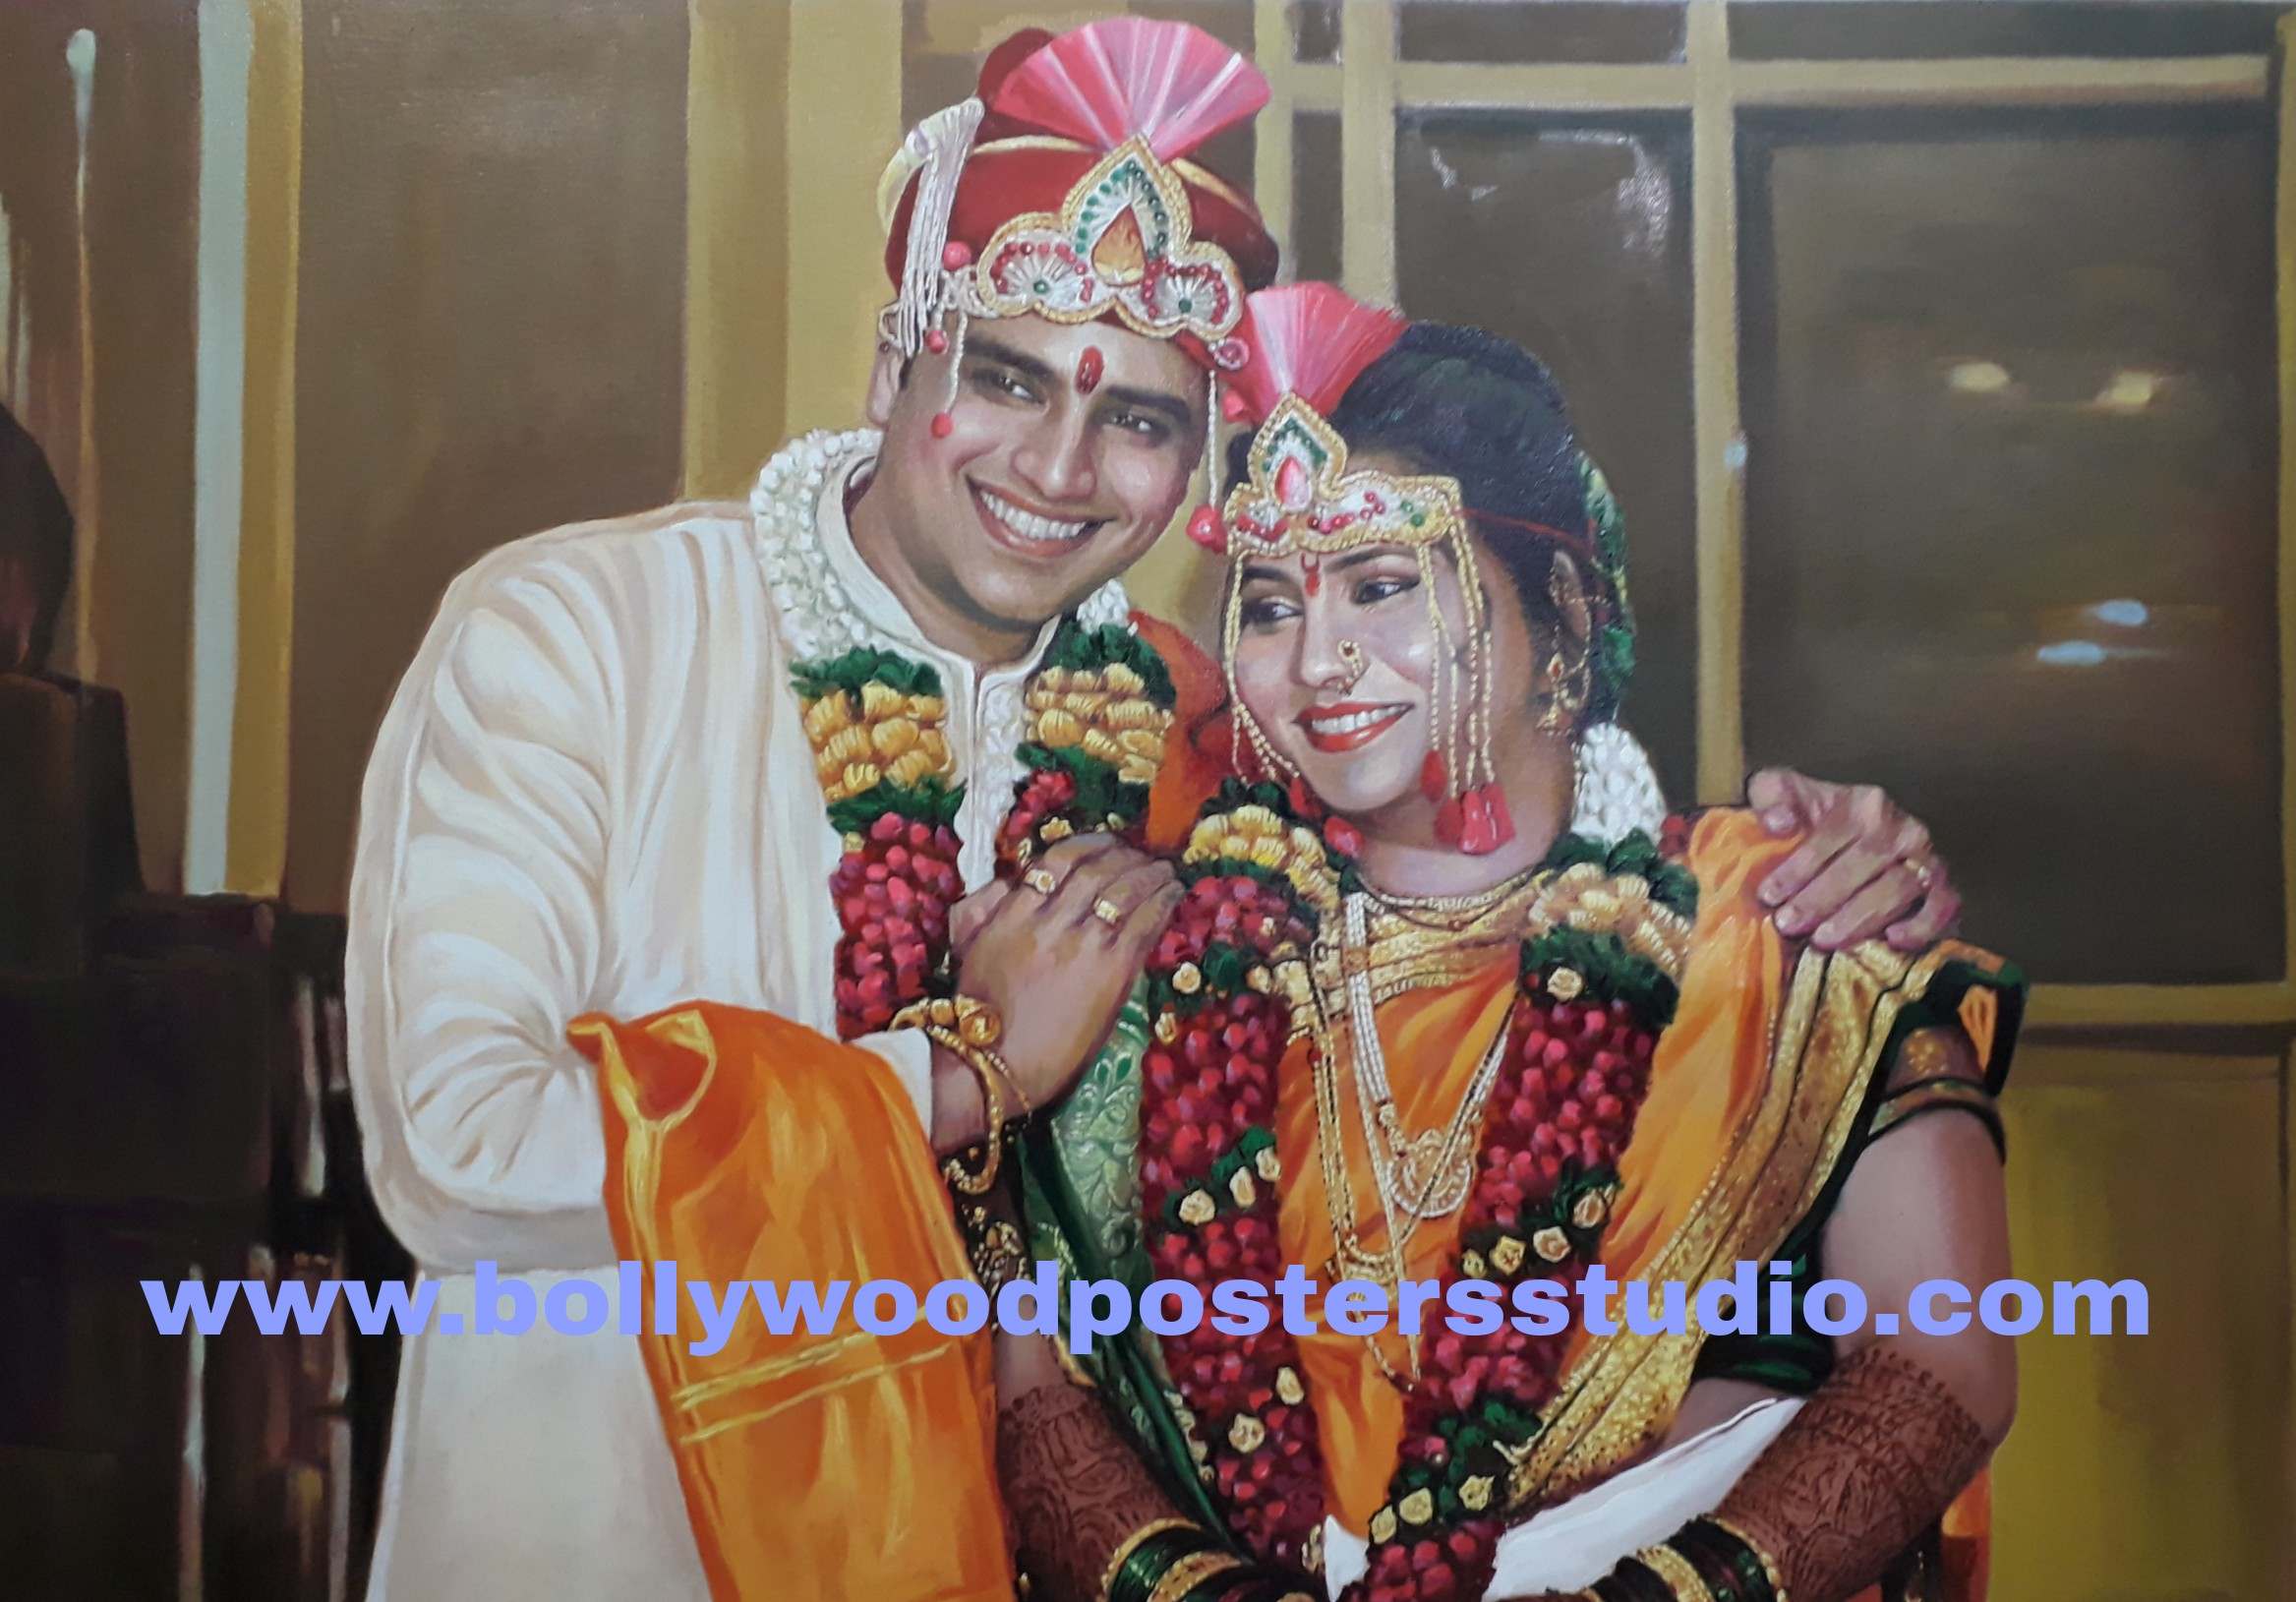 Hand painted wedding portraits on canvas